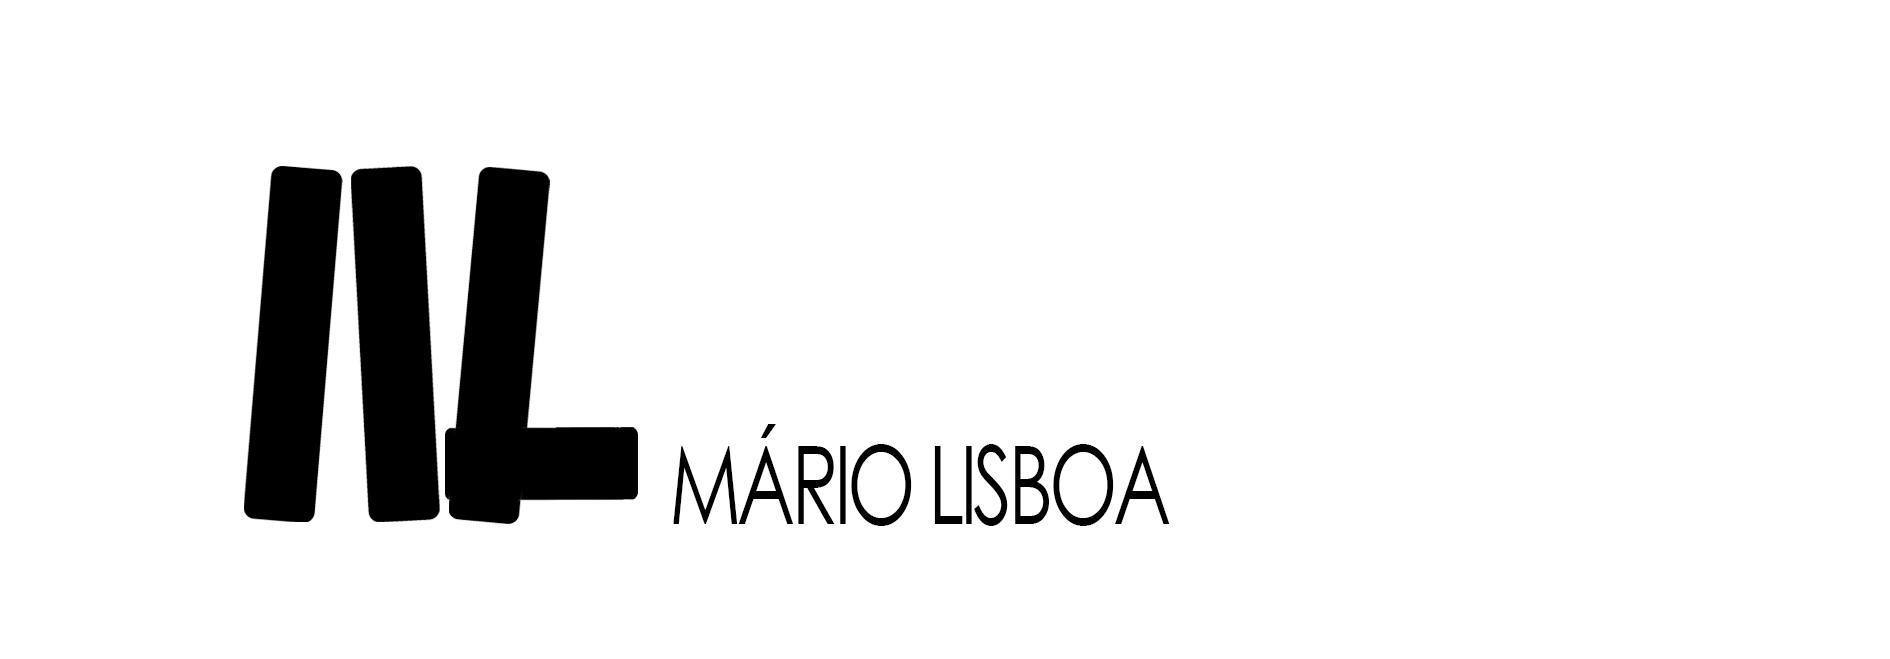 Mario Lisboa Photography